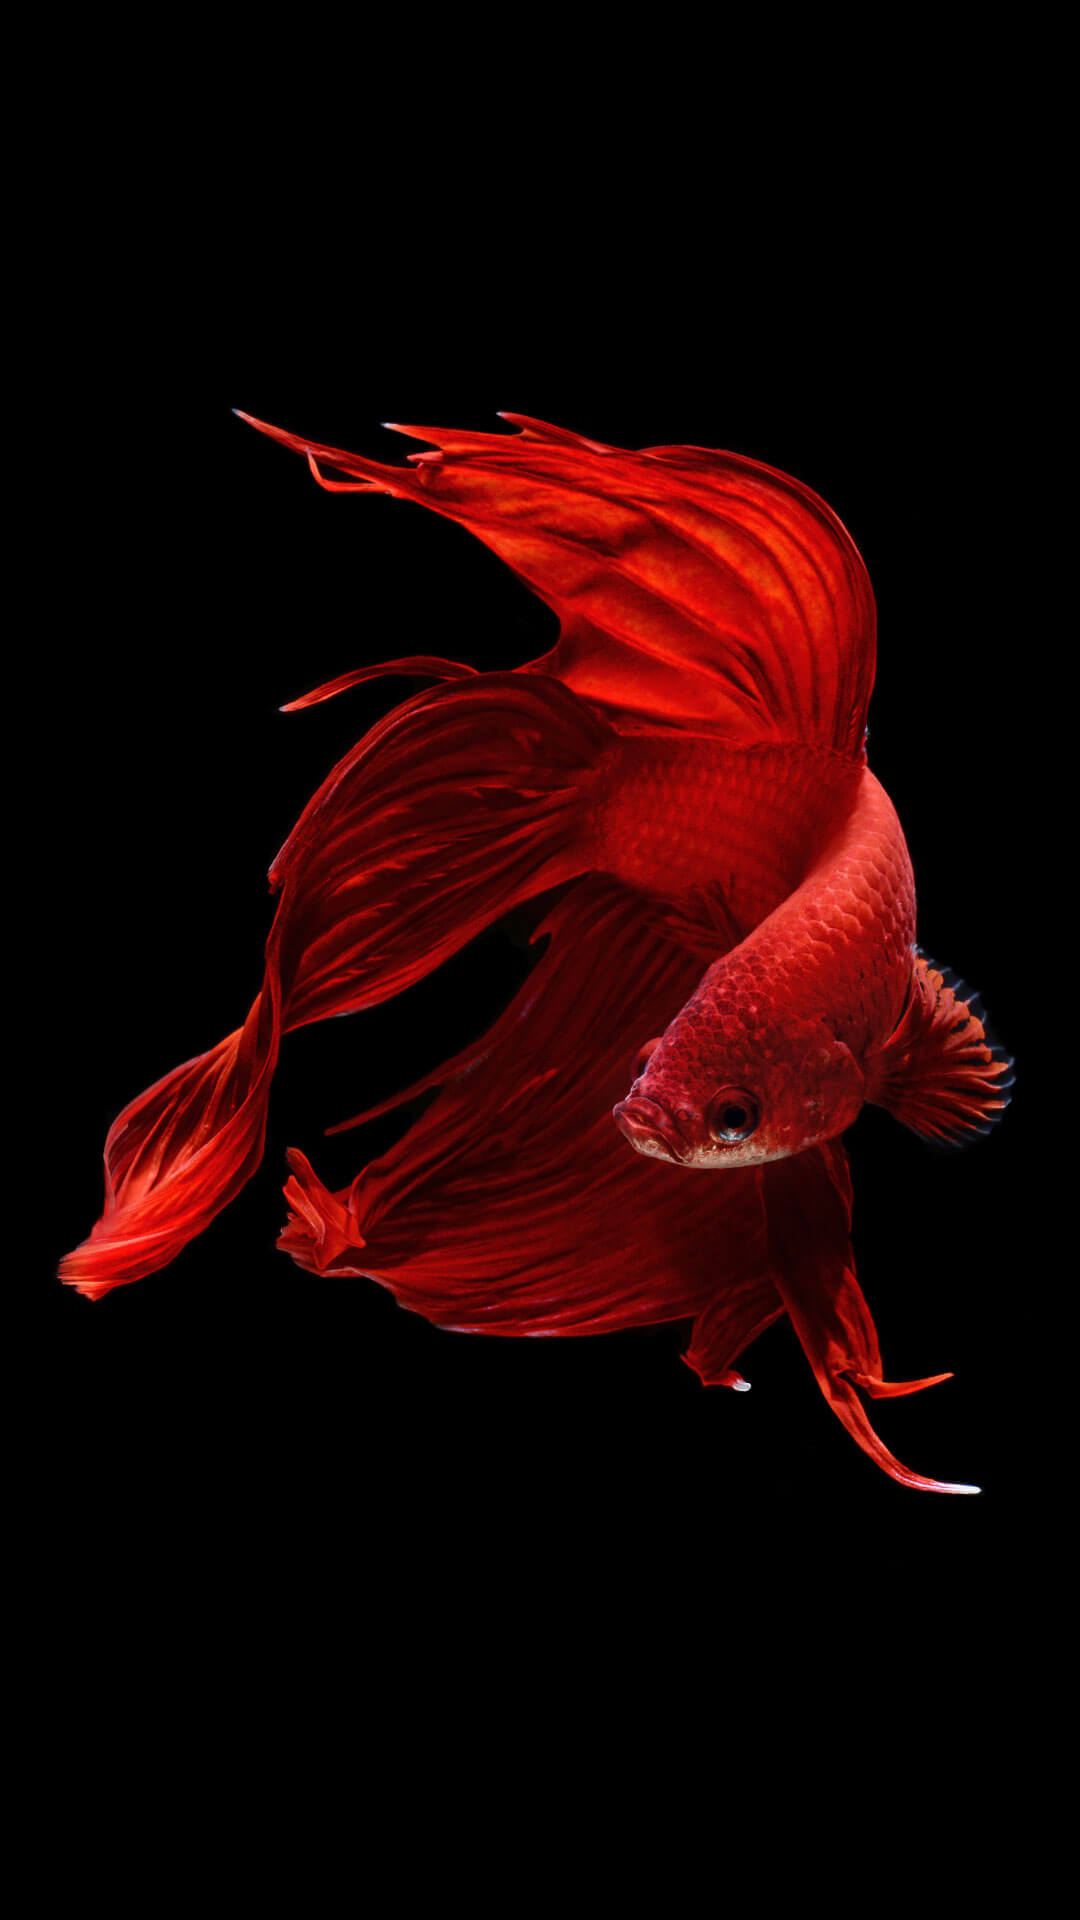 iphone live wallpaper iphone 7 fish wallpapers free 3003